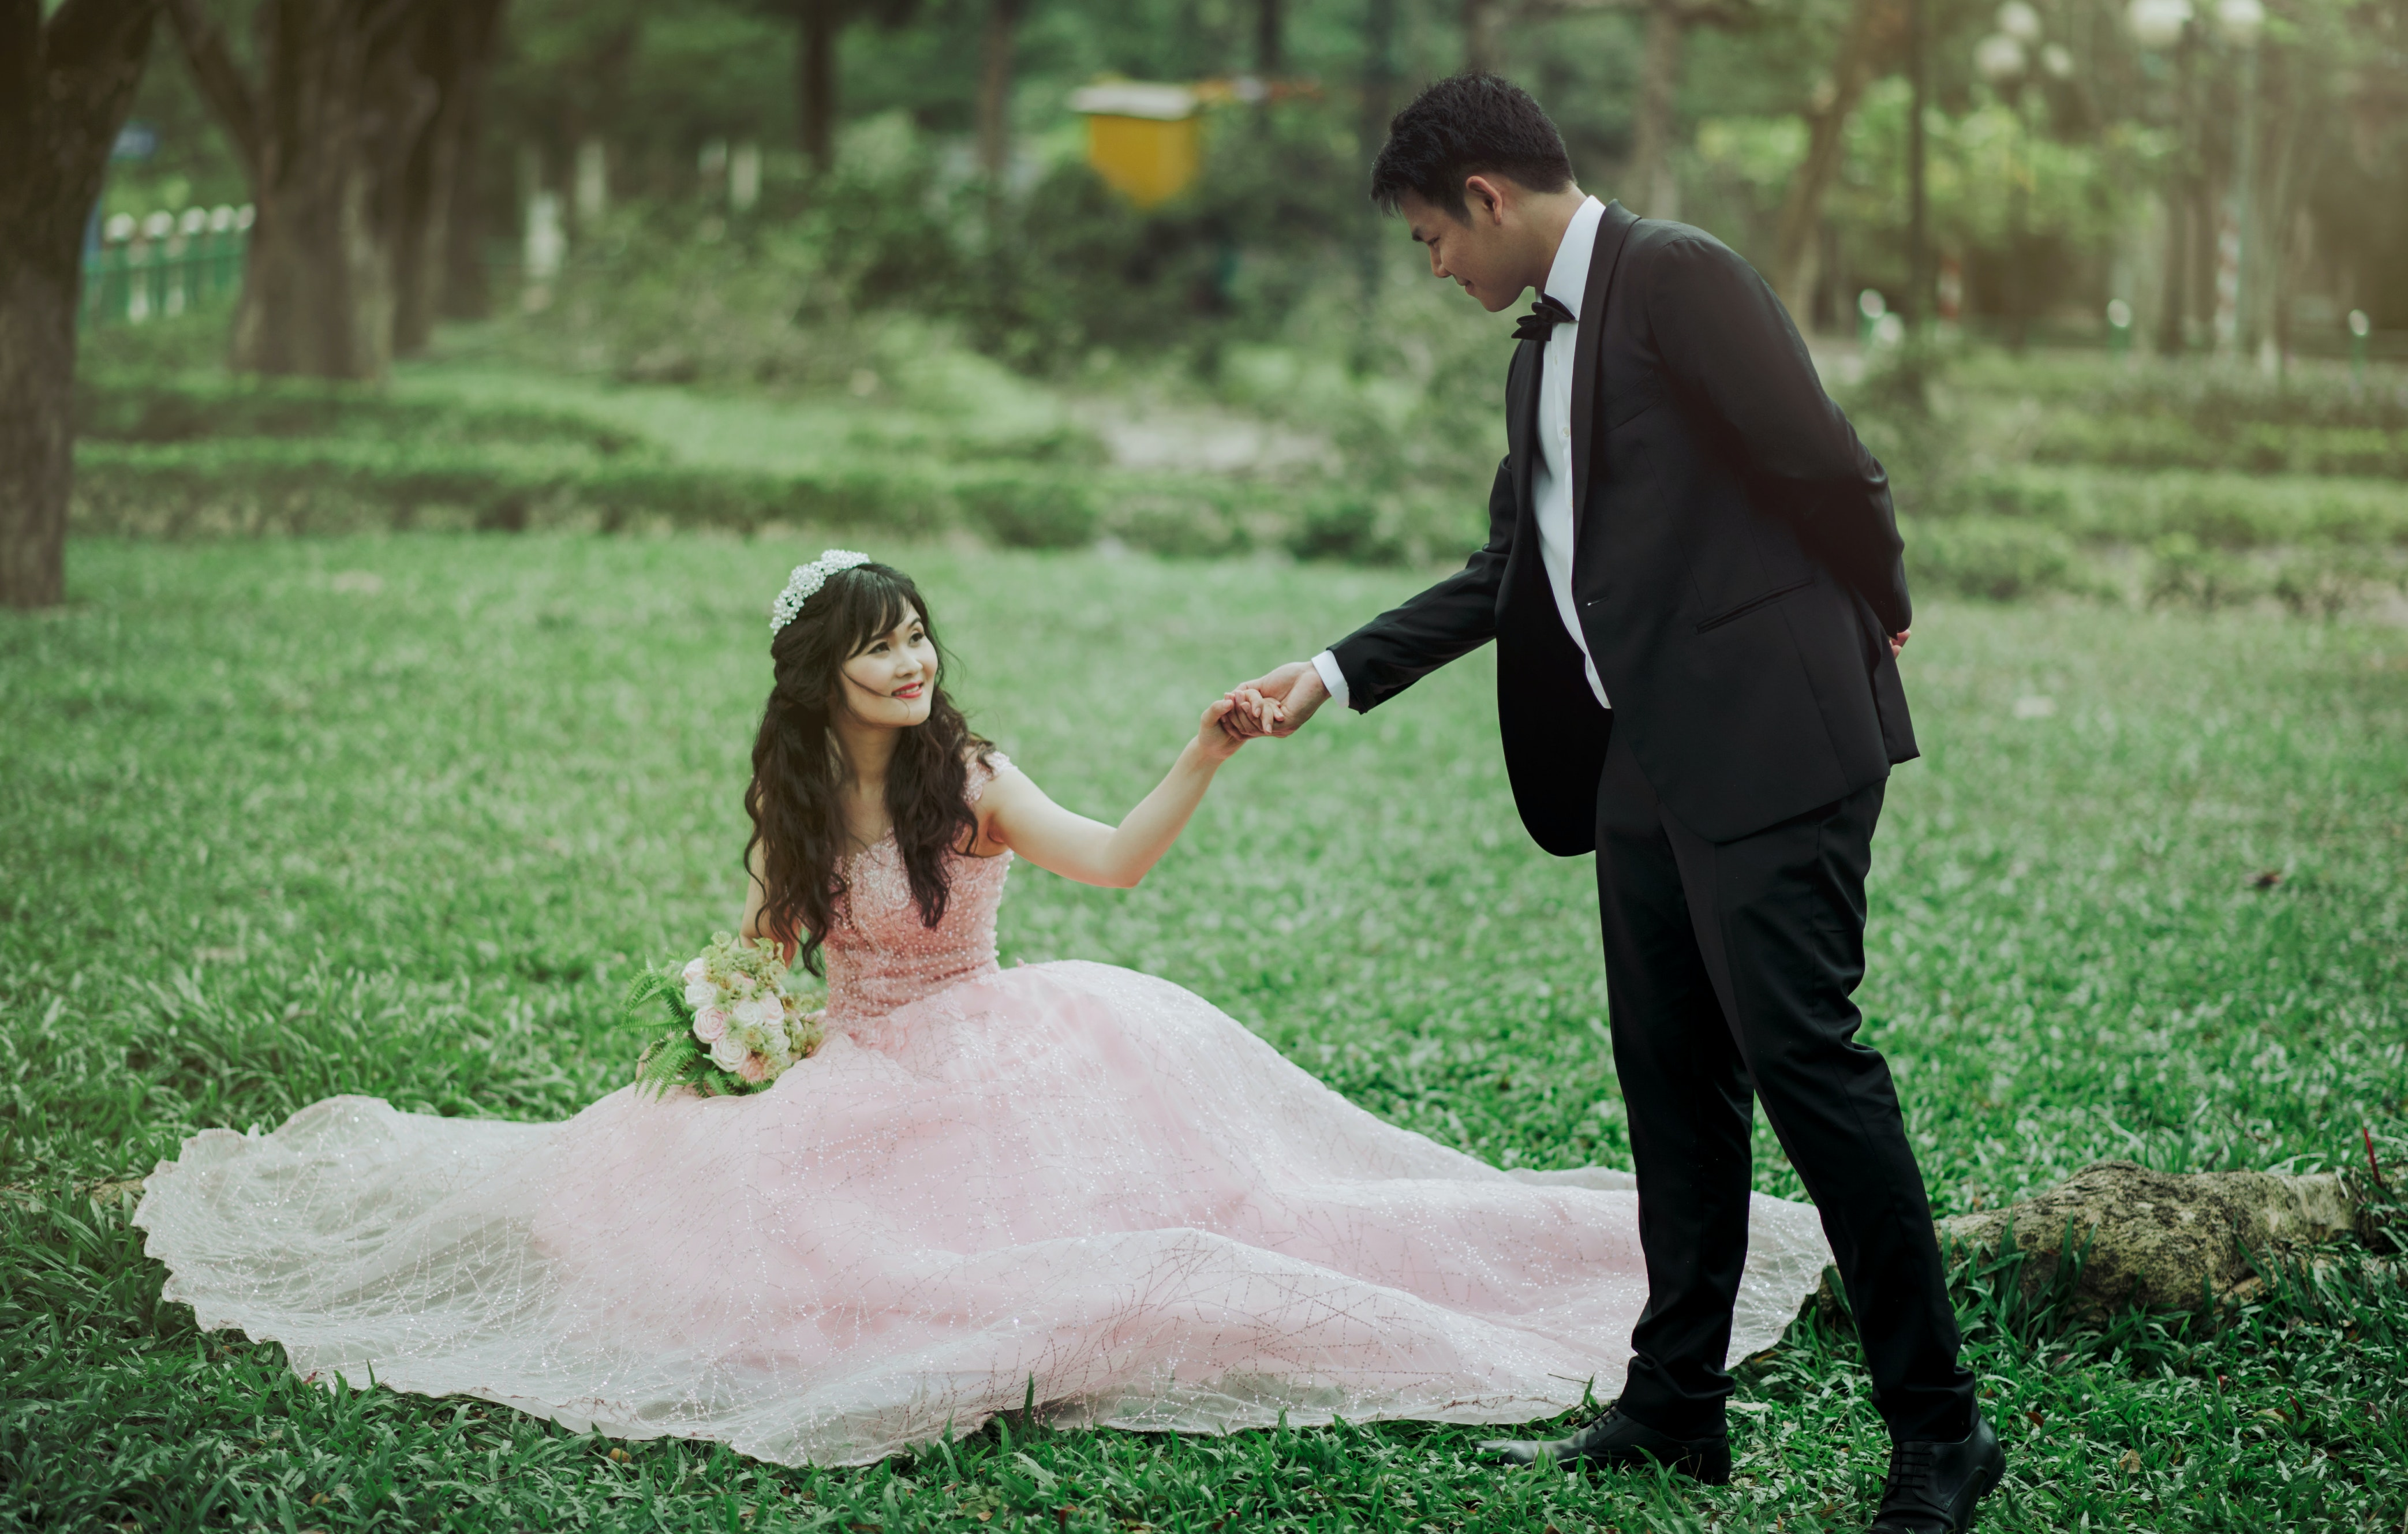 Man in 2-piece Suit Holding Woman in Peach-colored Wedding Gown White Holding Her Flower Bouquet ...